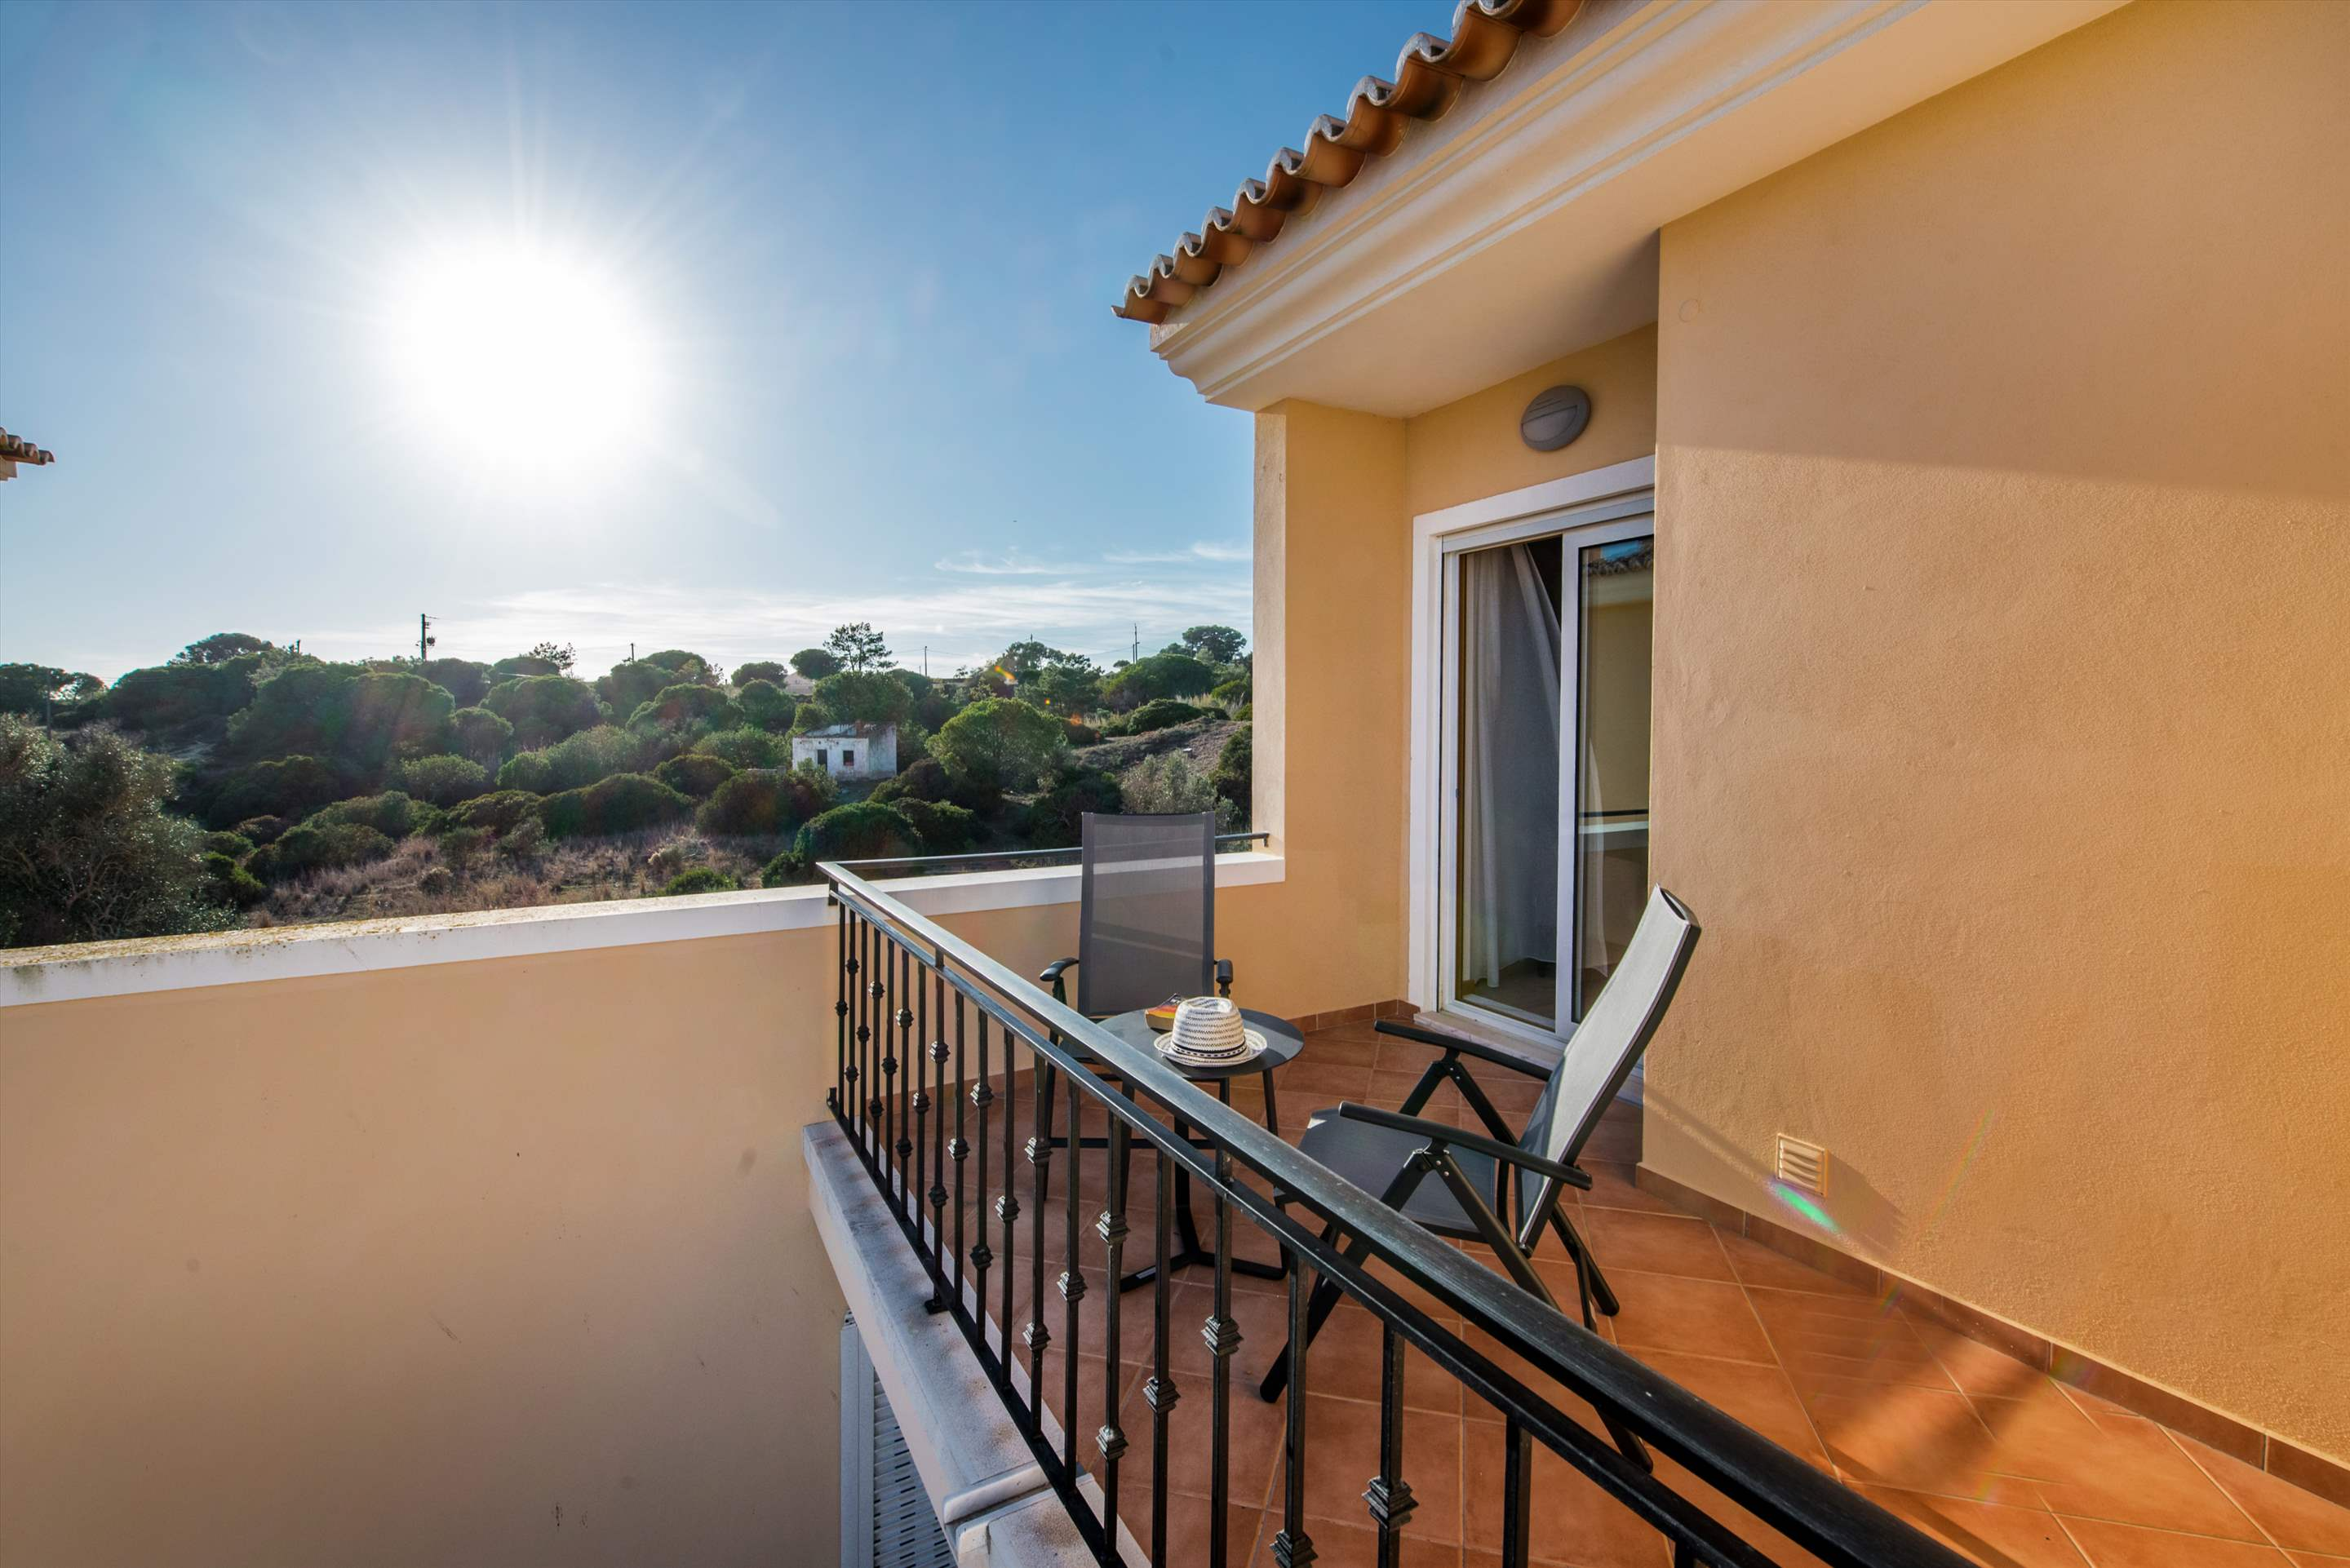 Townhouse Rosal 'D', 2 bedroom villa in Gale, Vale da Parra and Guia, Algarve Photo #10